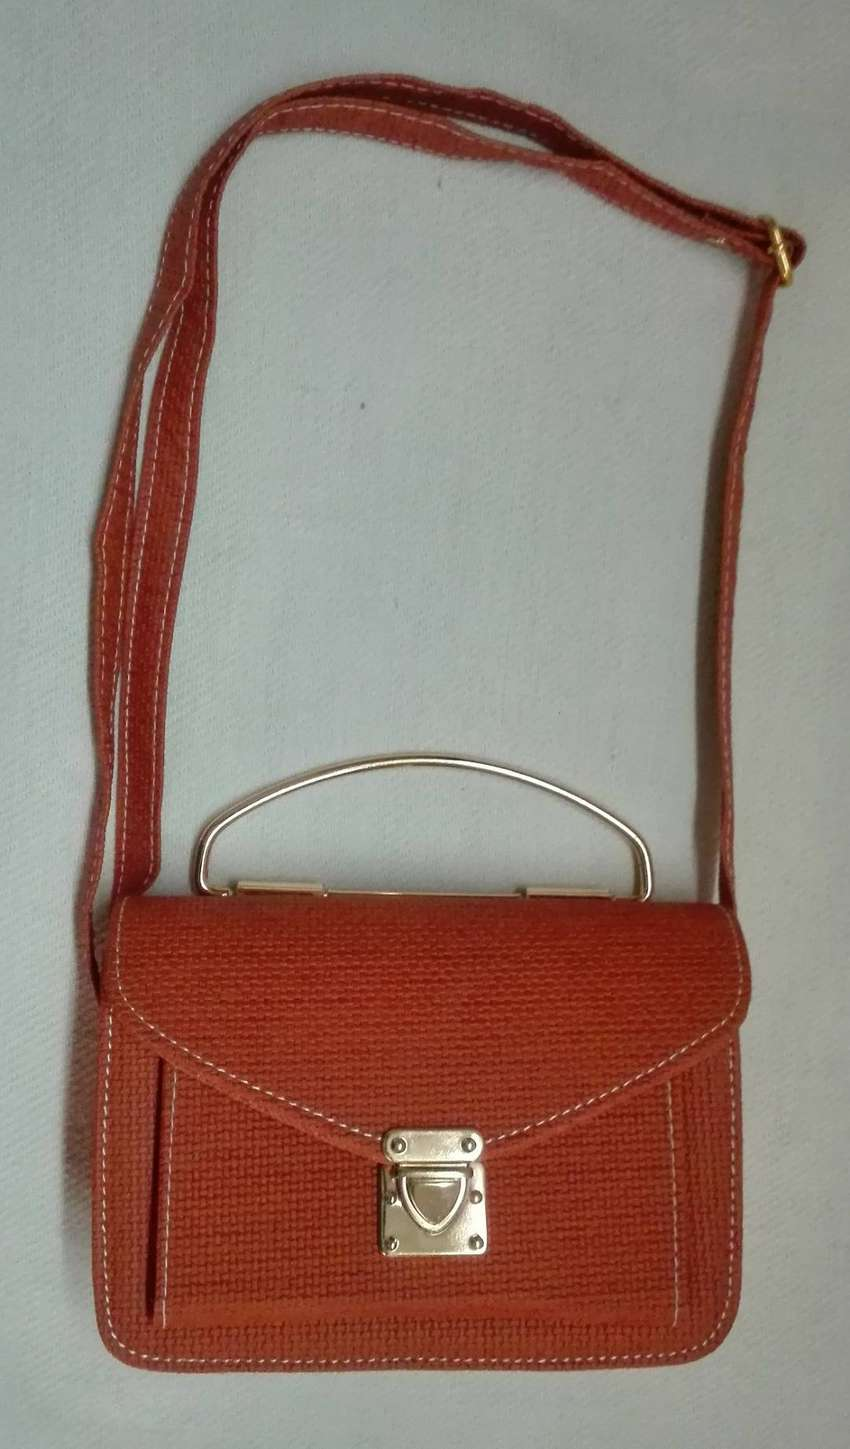 Cute Textured Leather Flap Bag 0